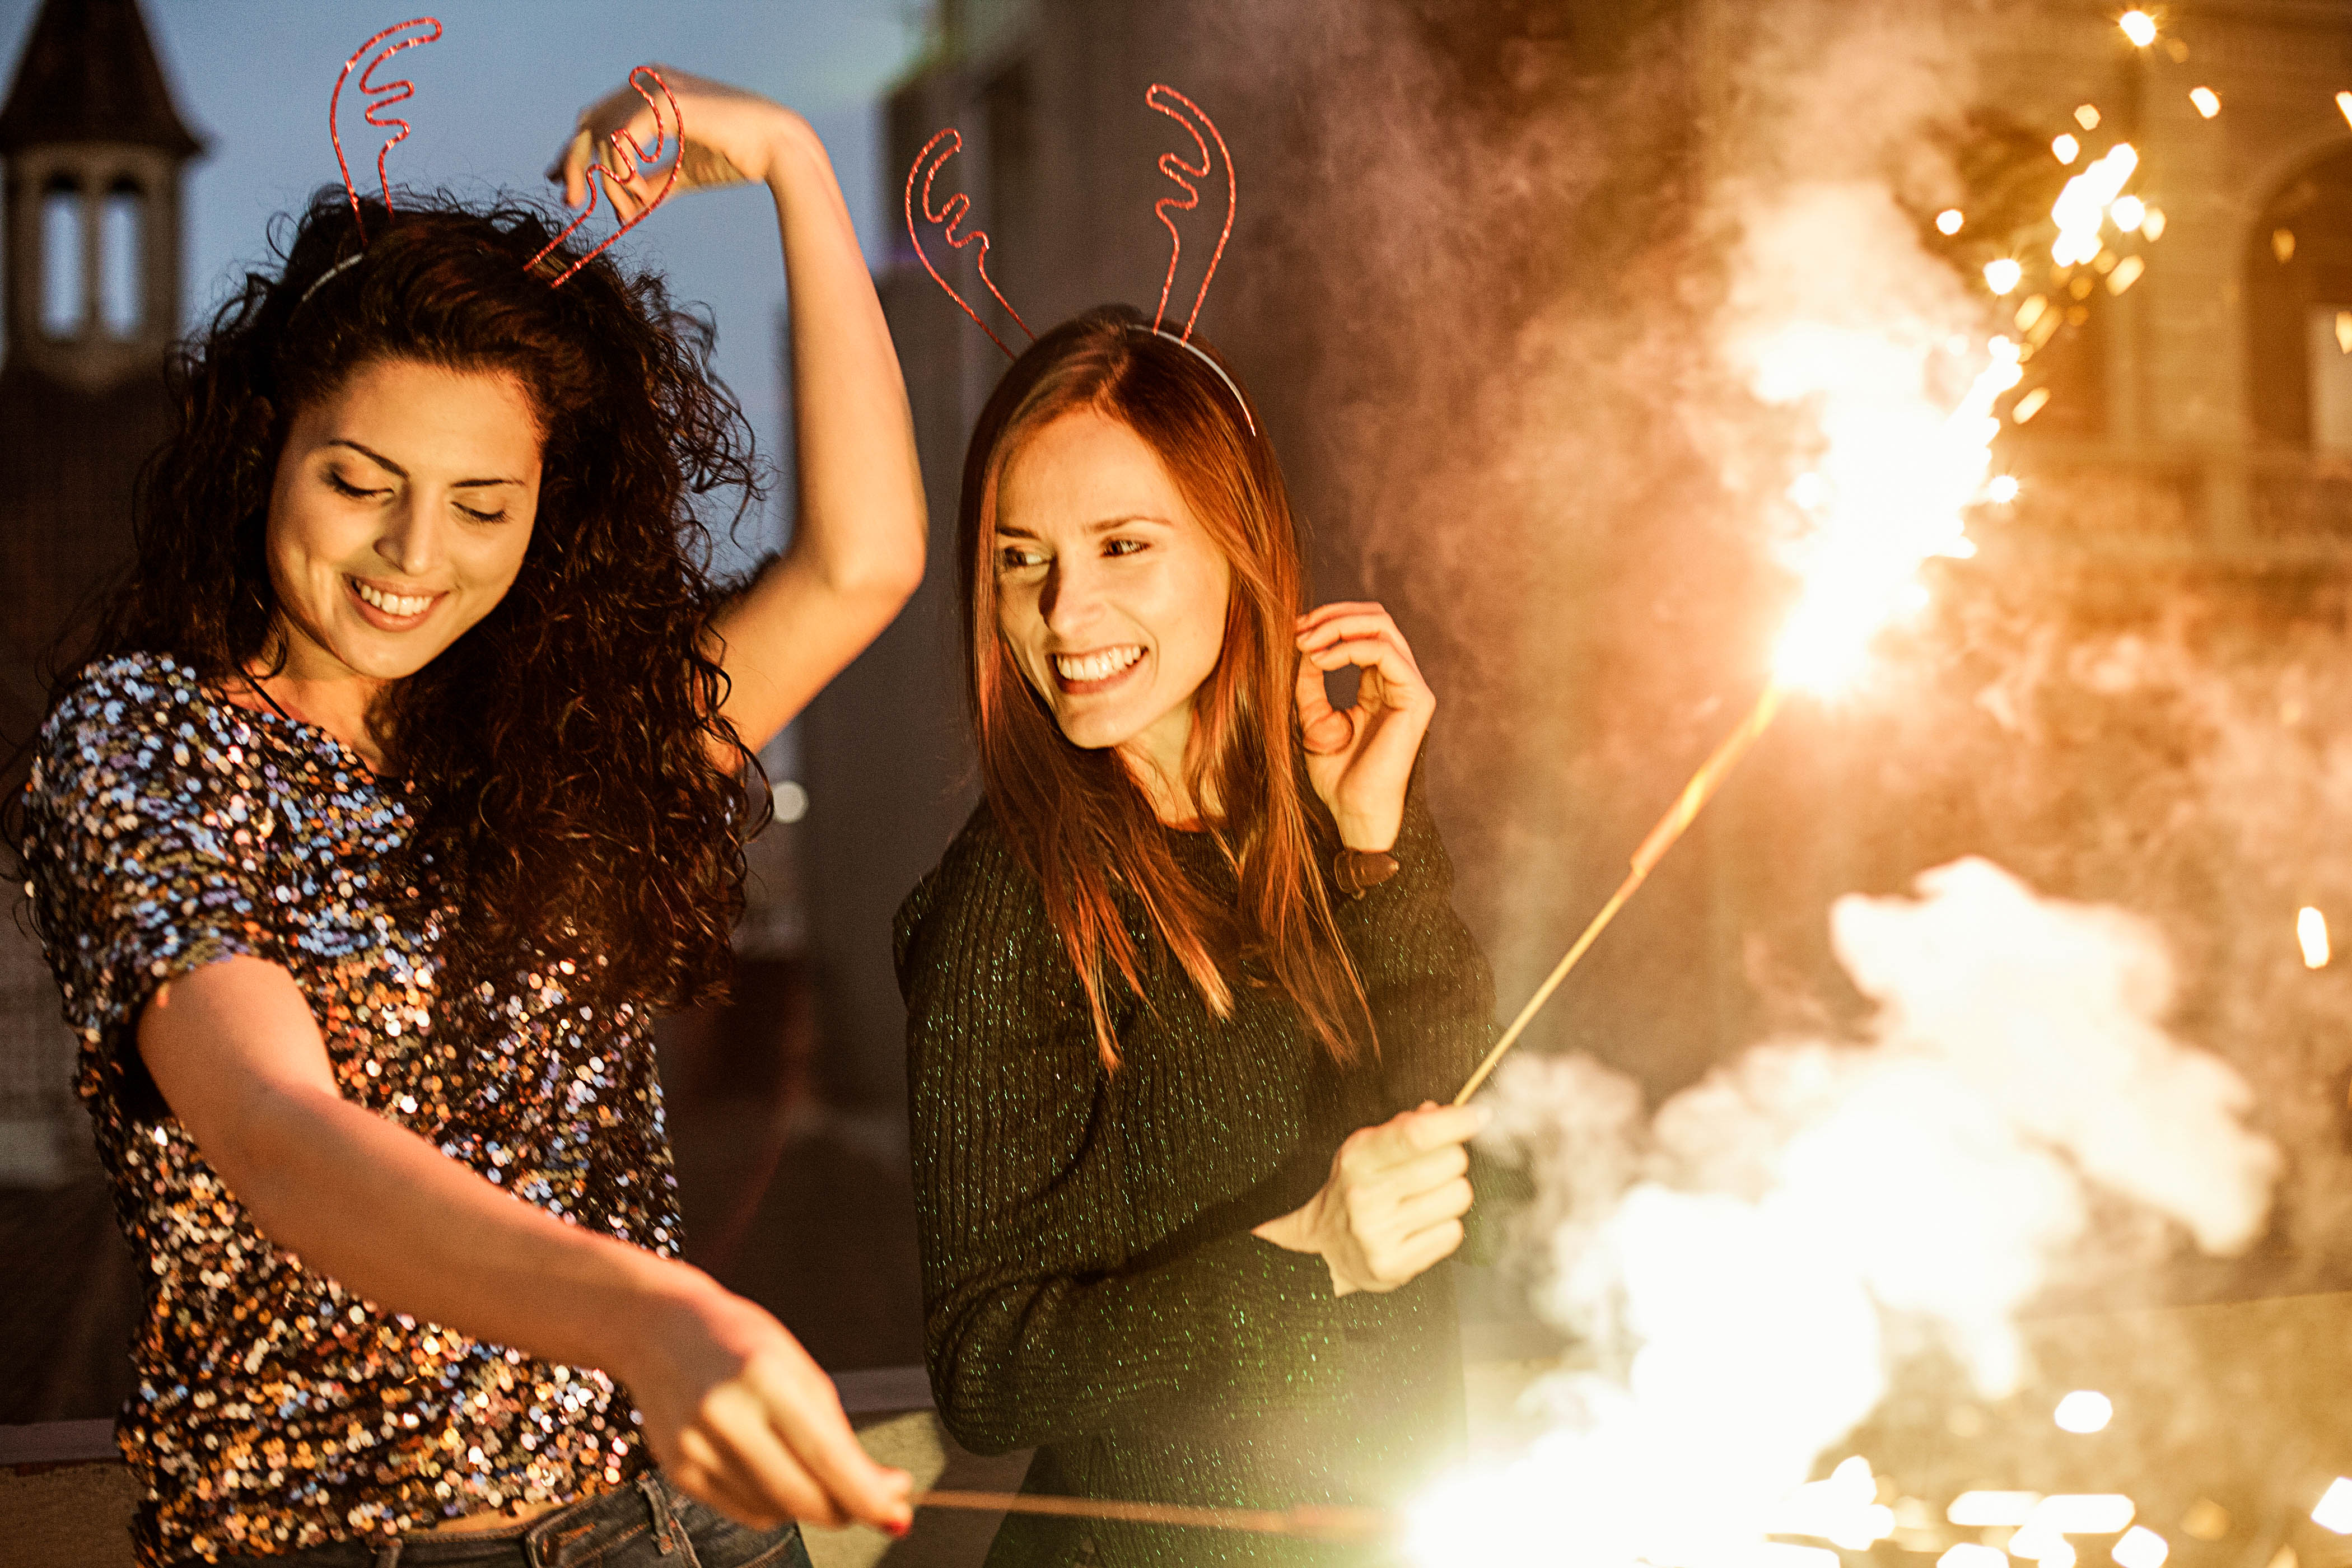 Friends with sparklers celebrating christmas